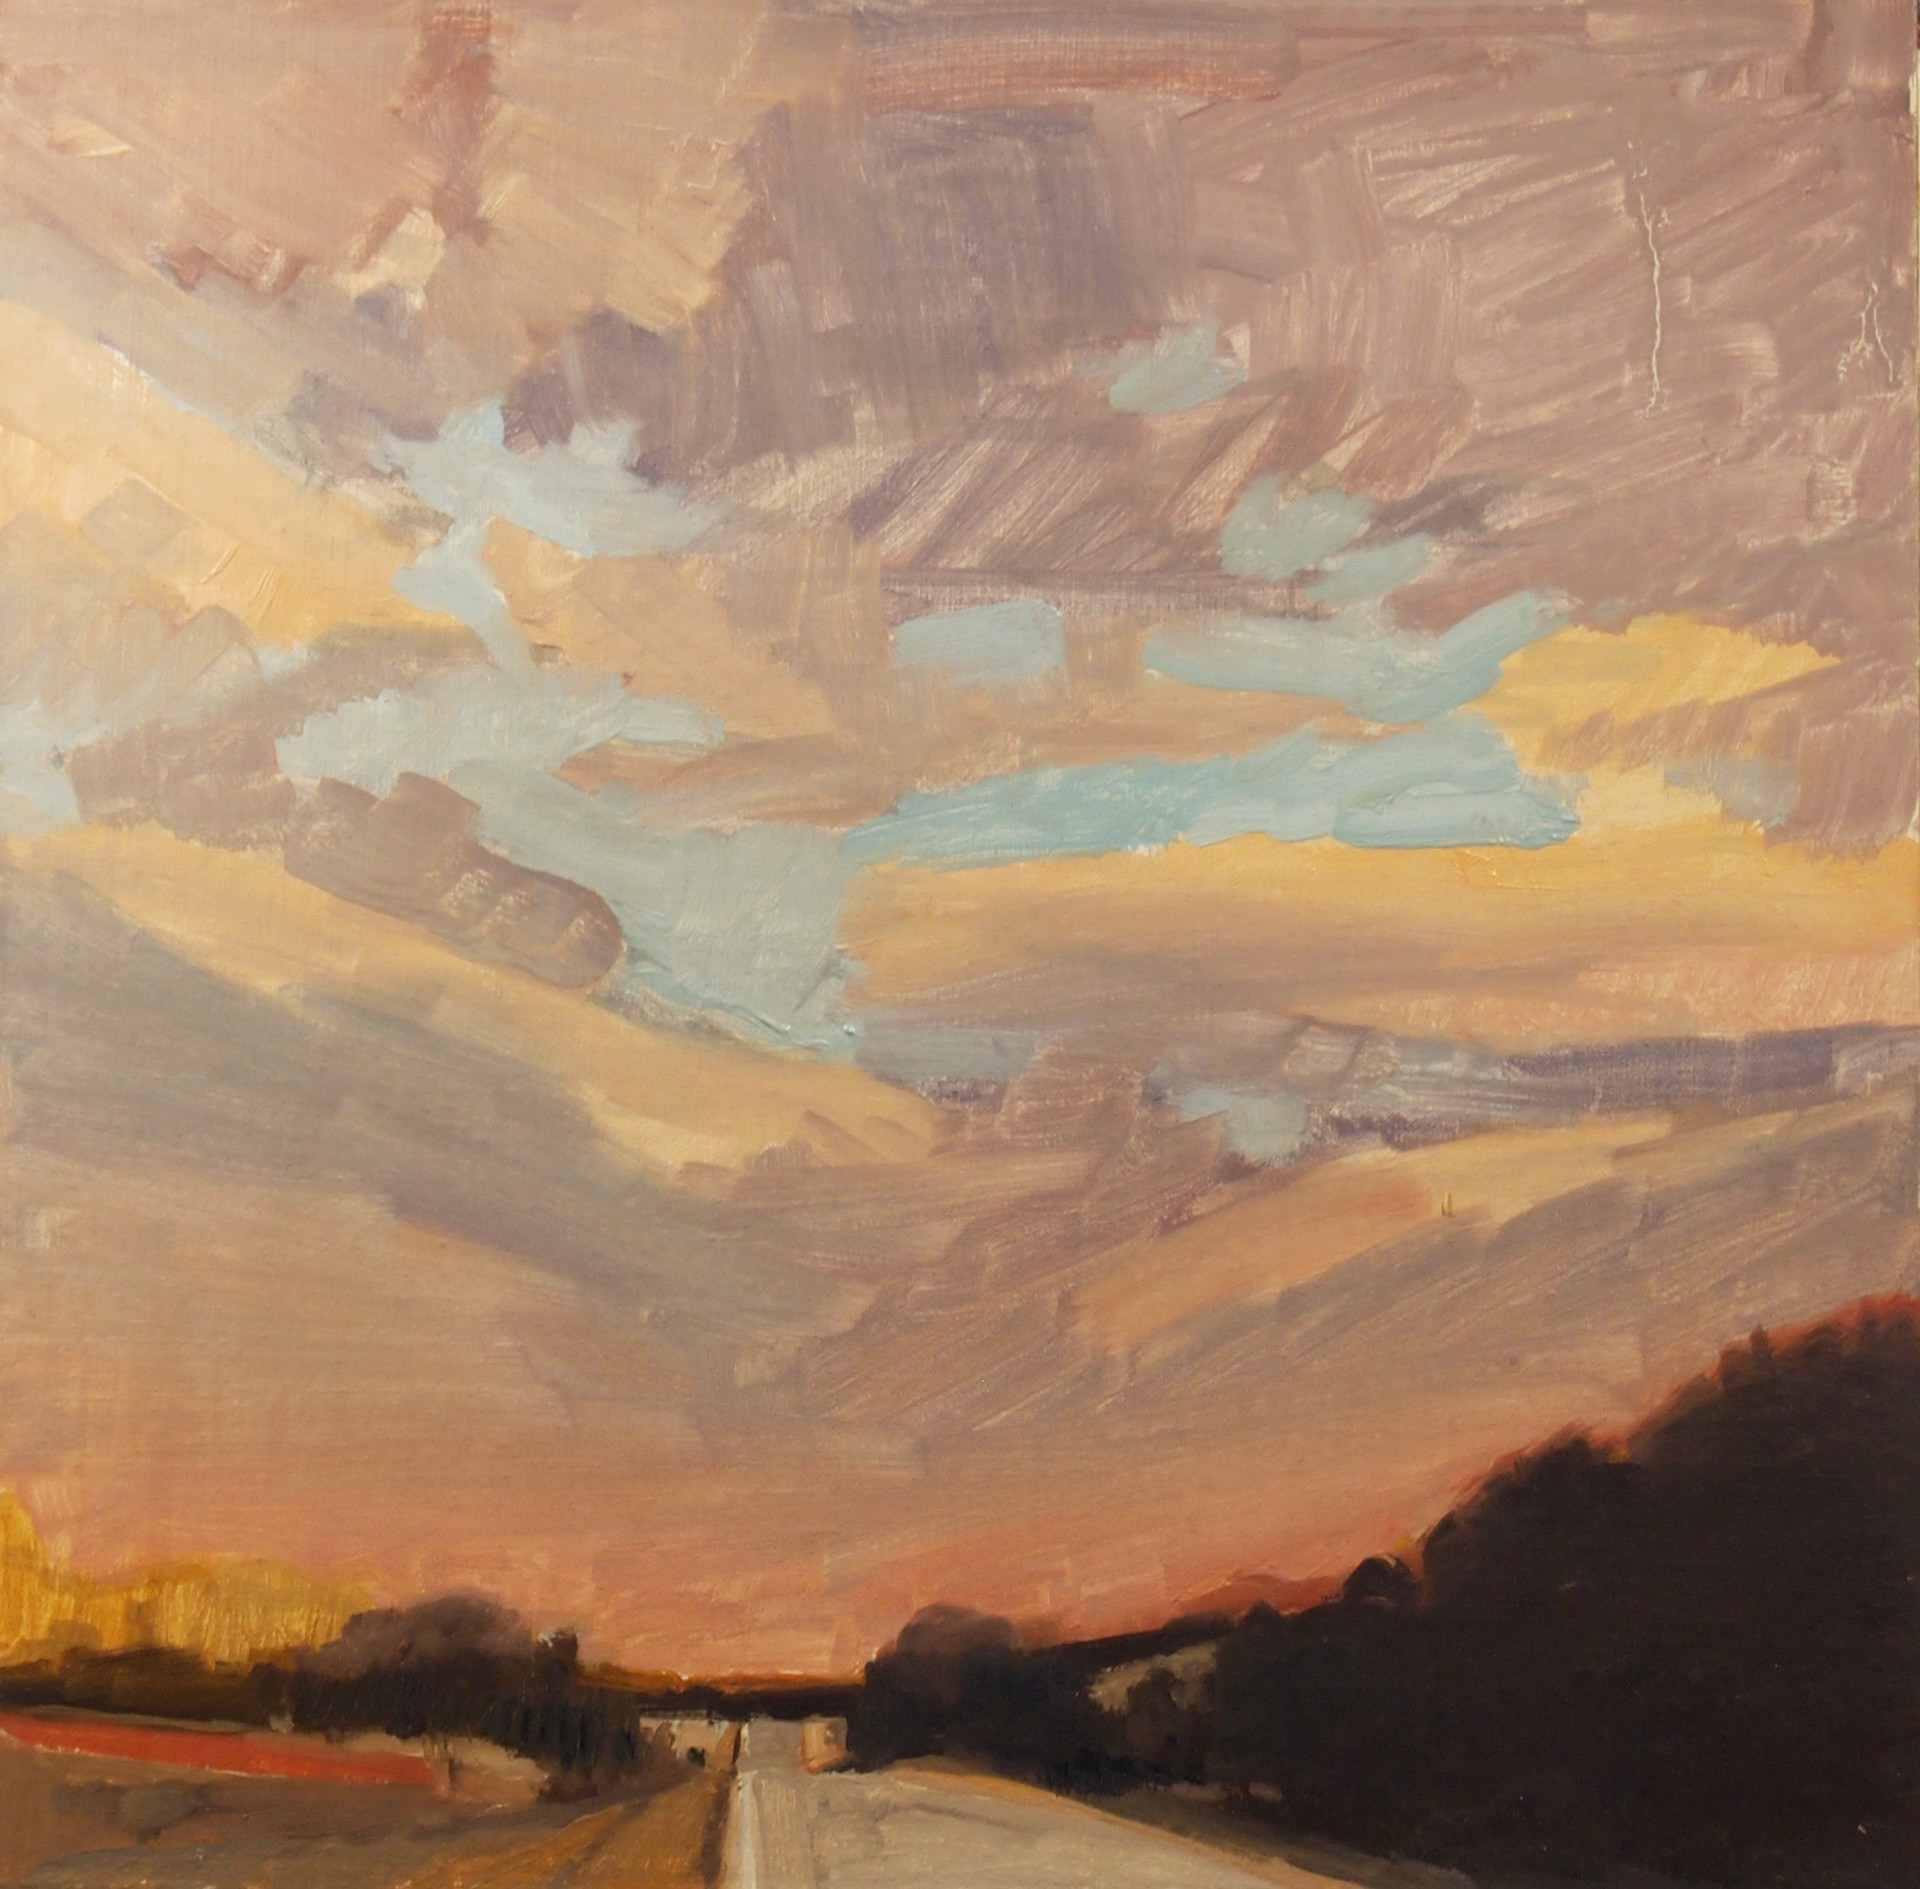 Valley Grove Road by Tom Maakestad